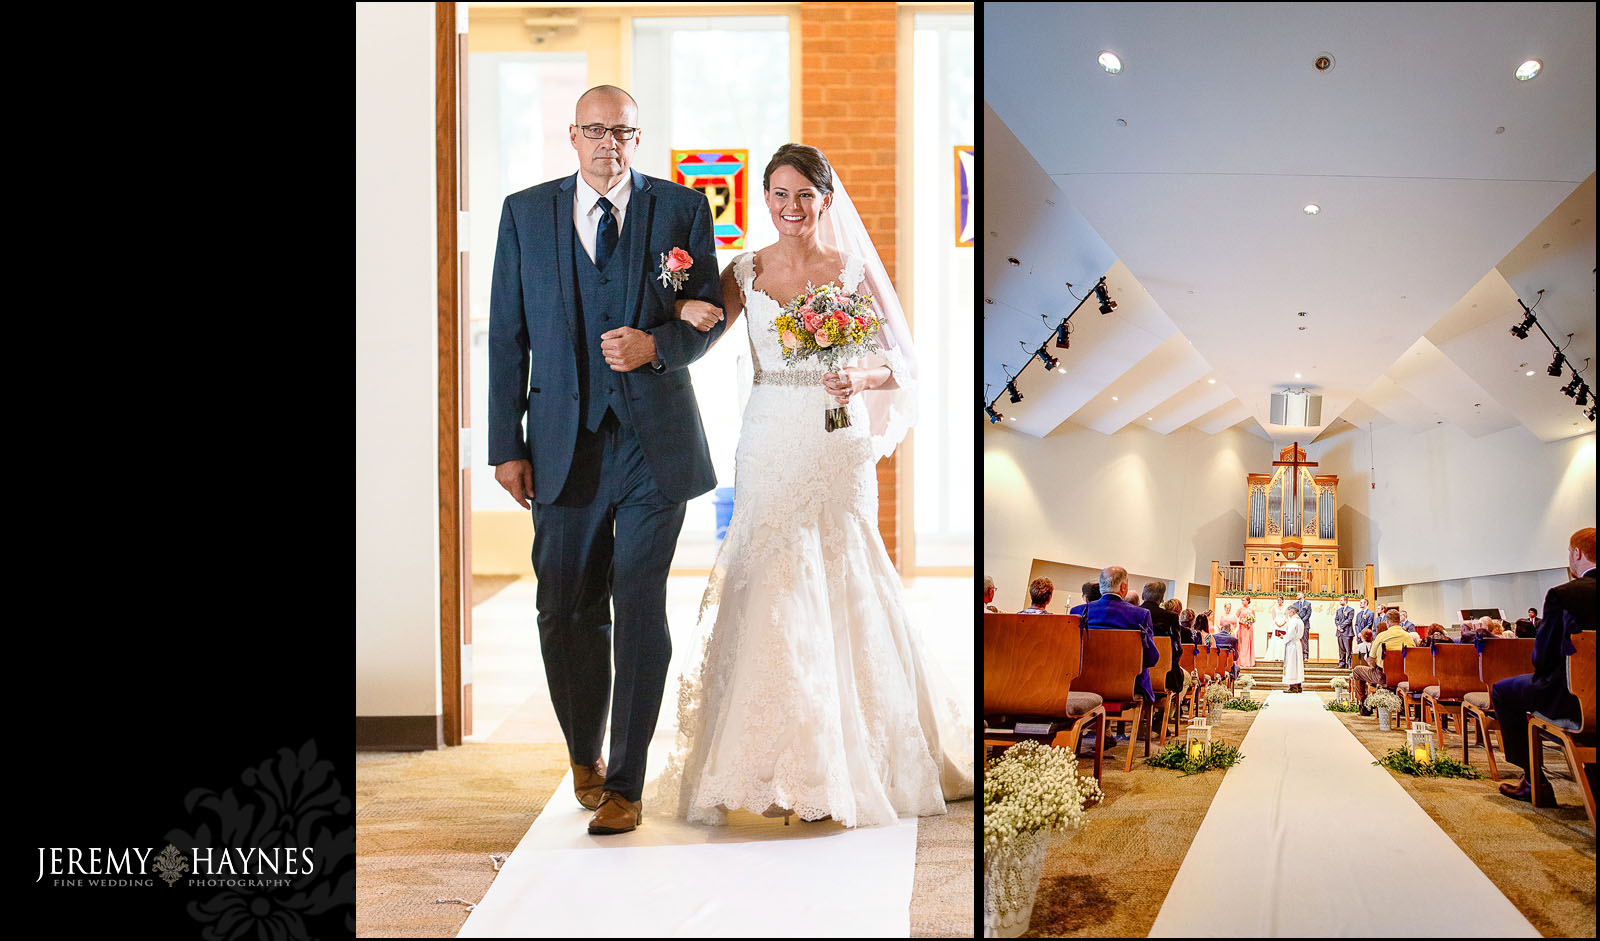 calvary-united-methodist-church-wedding-ceremony